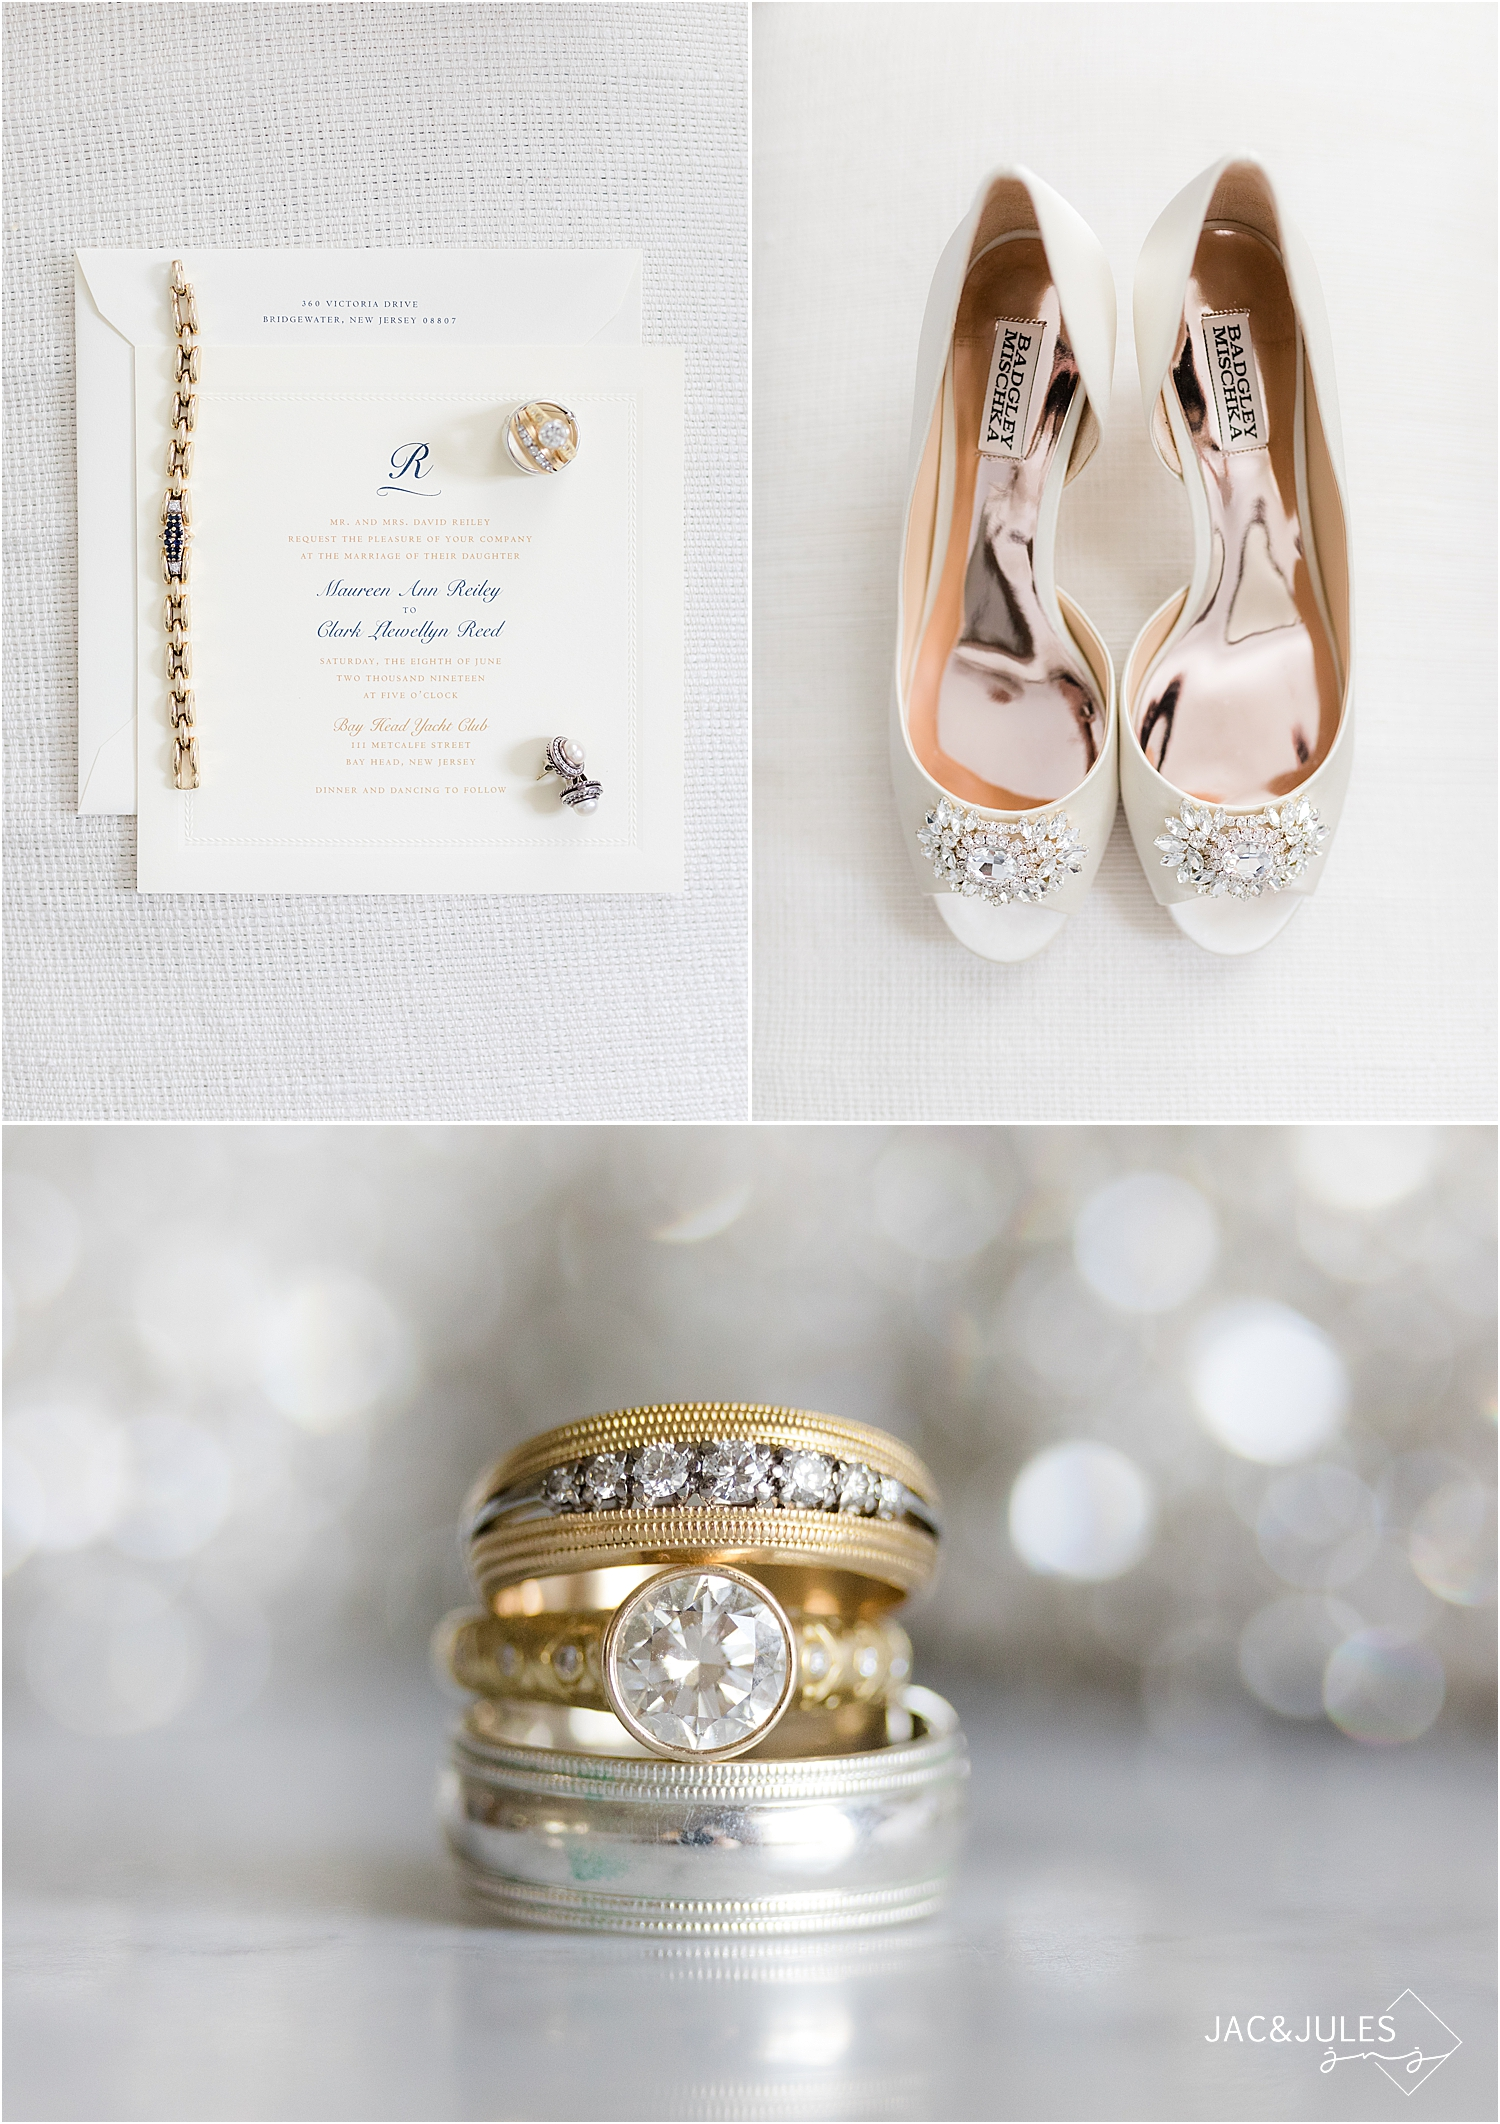 wedding invitation, brides shoes and vintage wedding rings